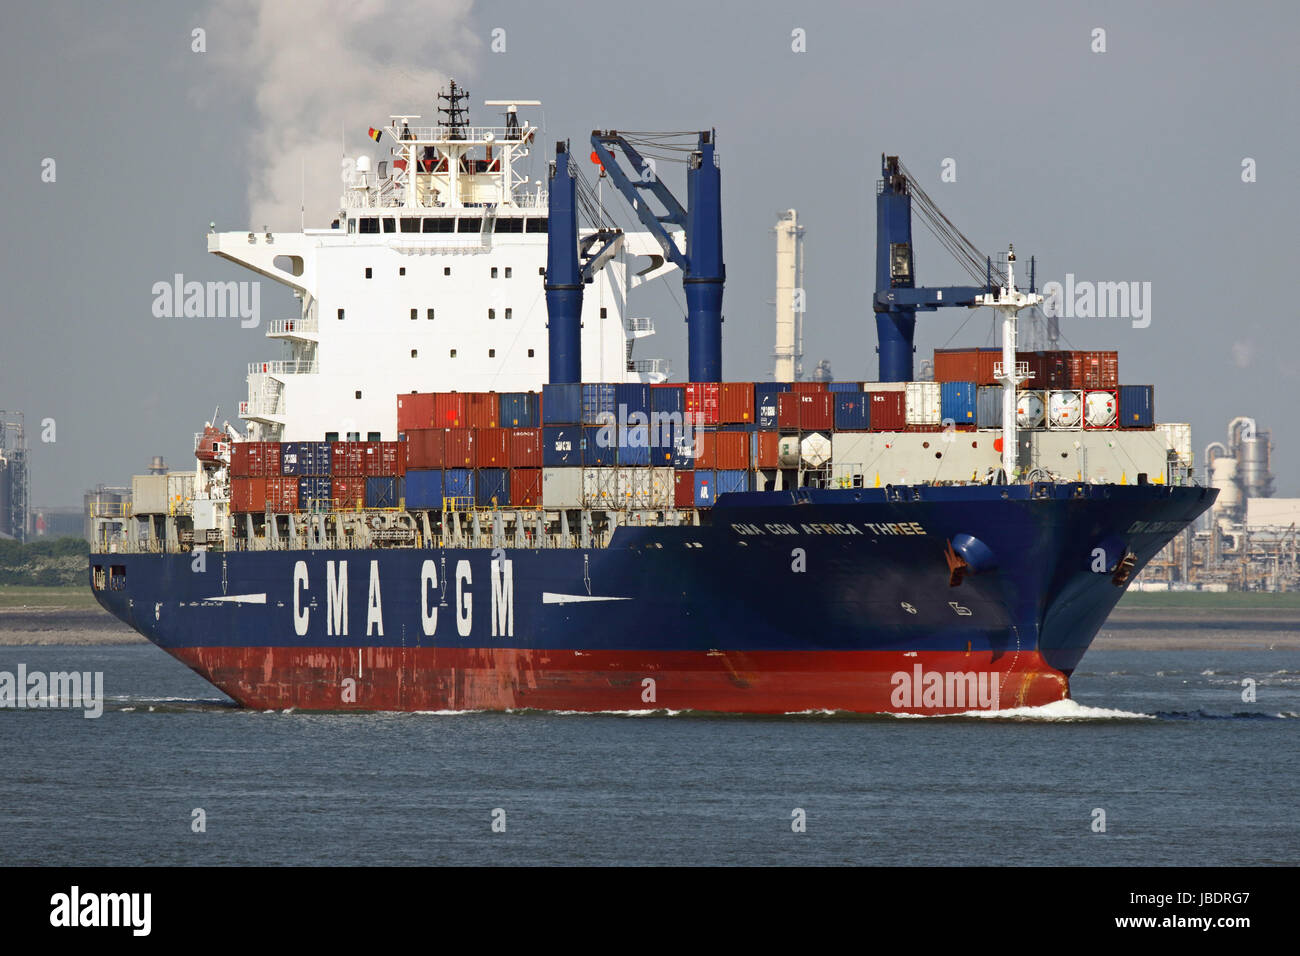 The container ship CMA CGM Africa Three passes Terneuzen and continues to the port of Antwerp. - Stock Image